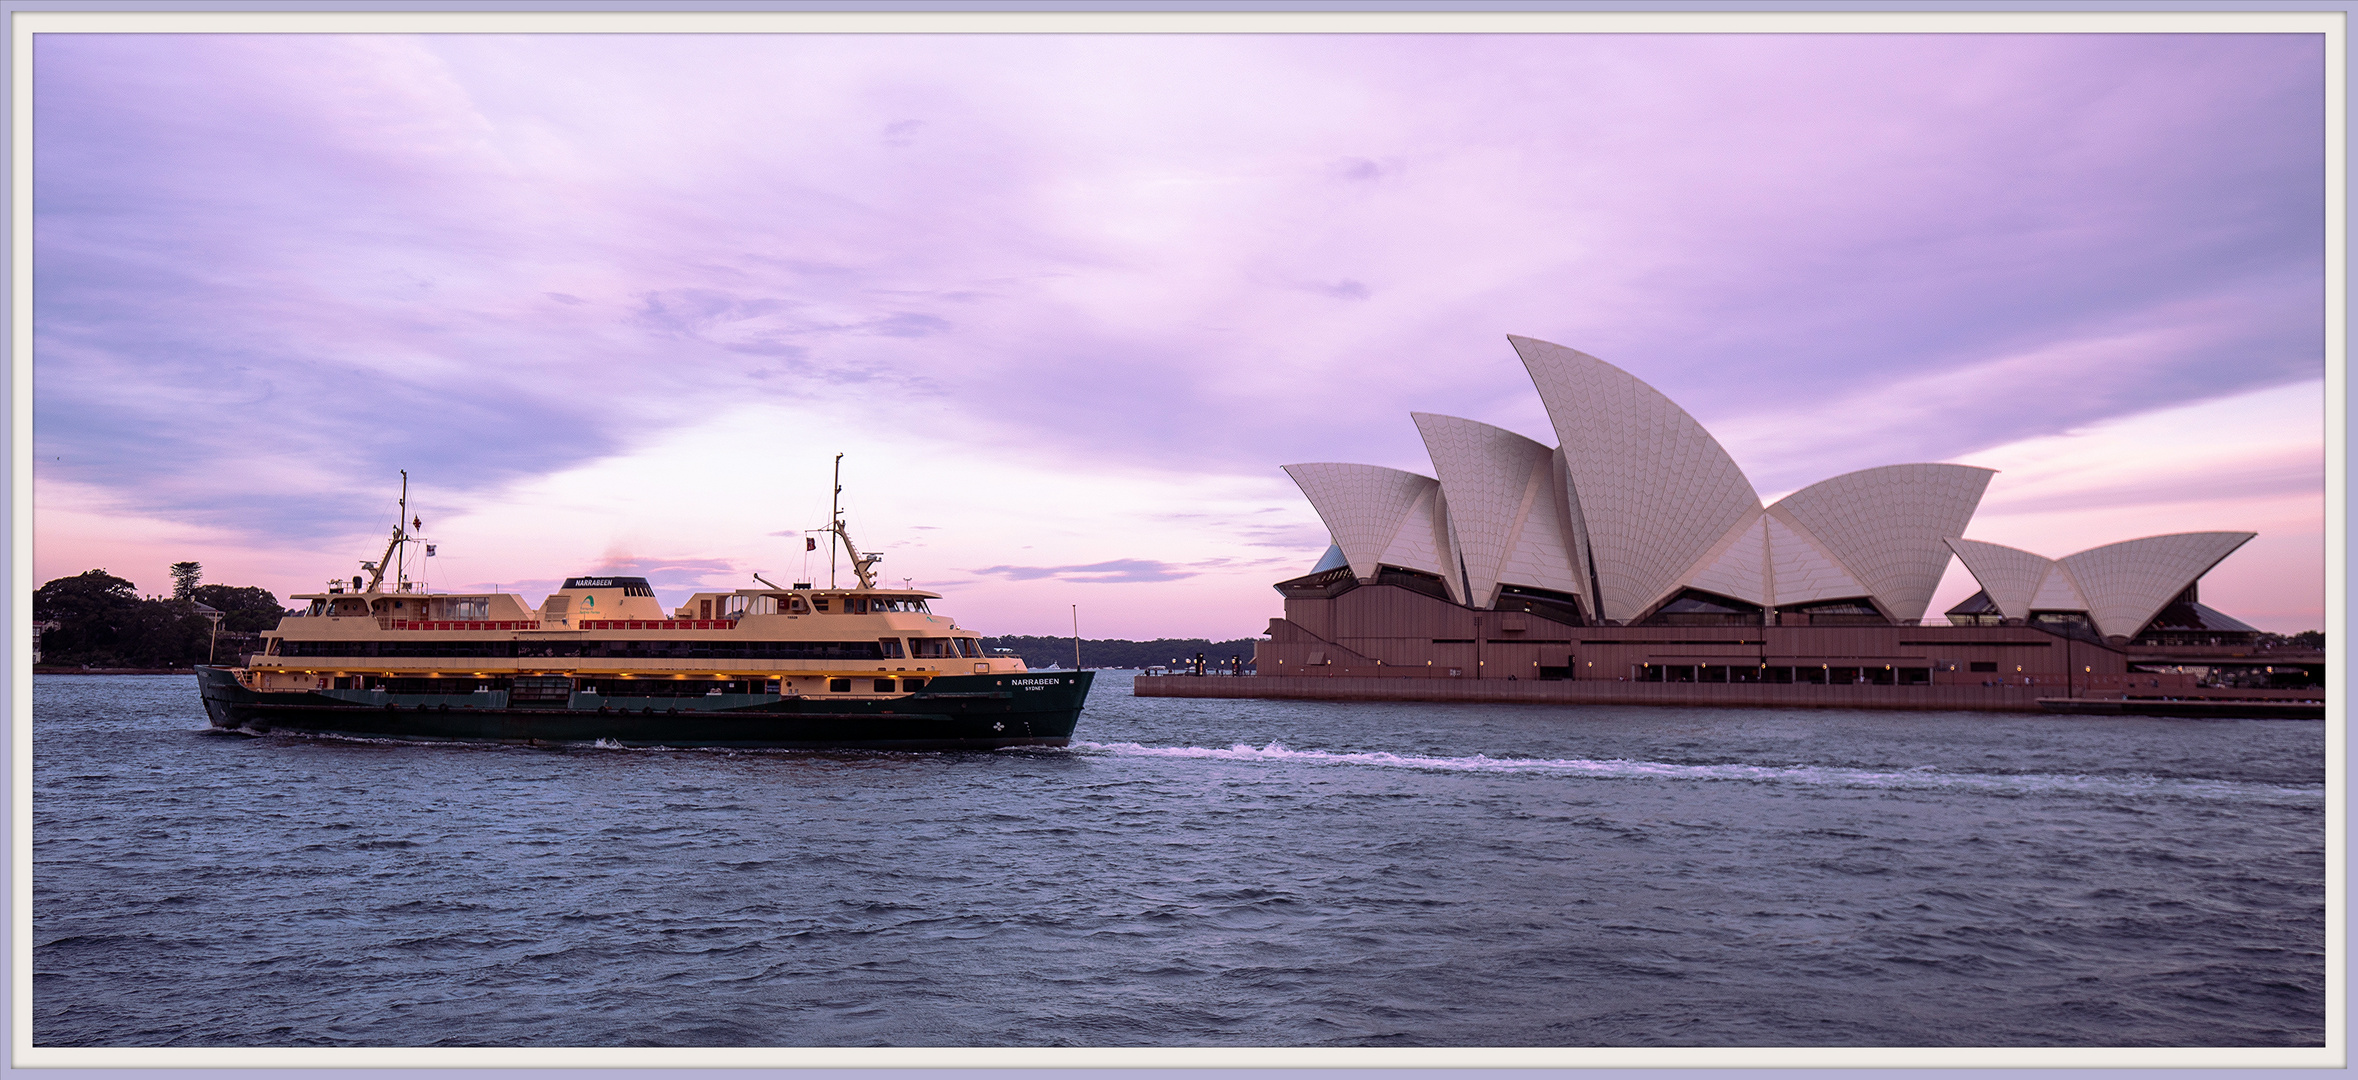 The Manly Ferry